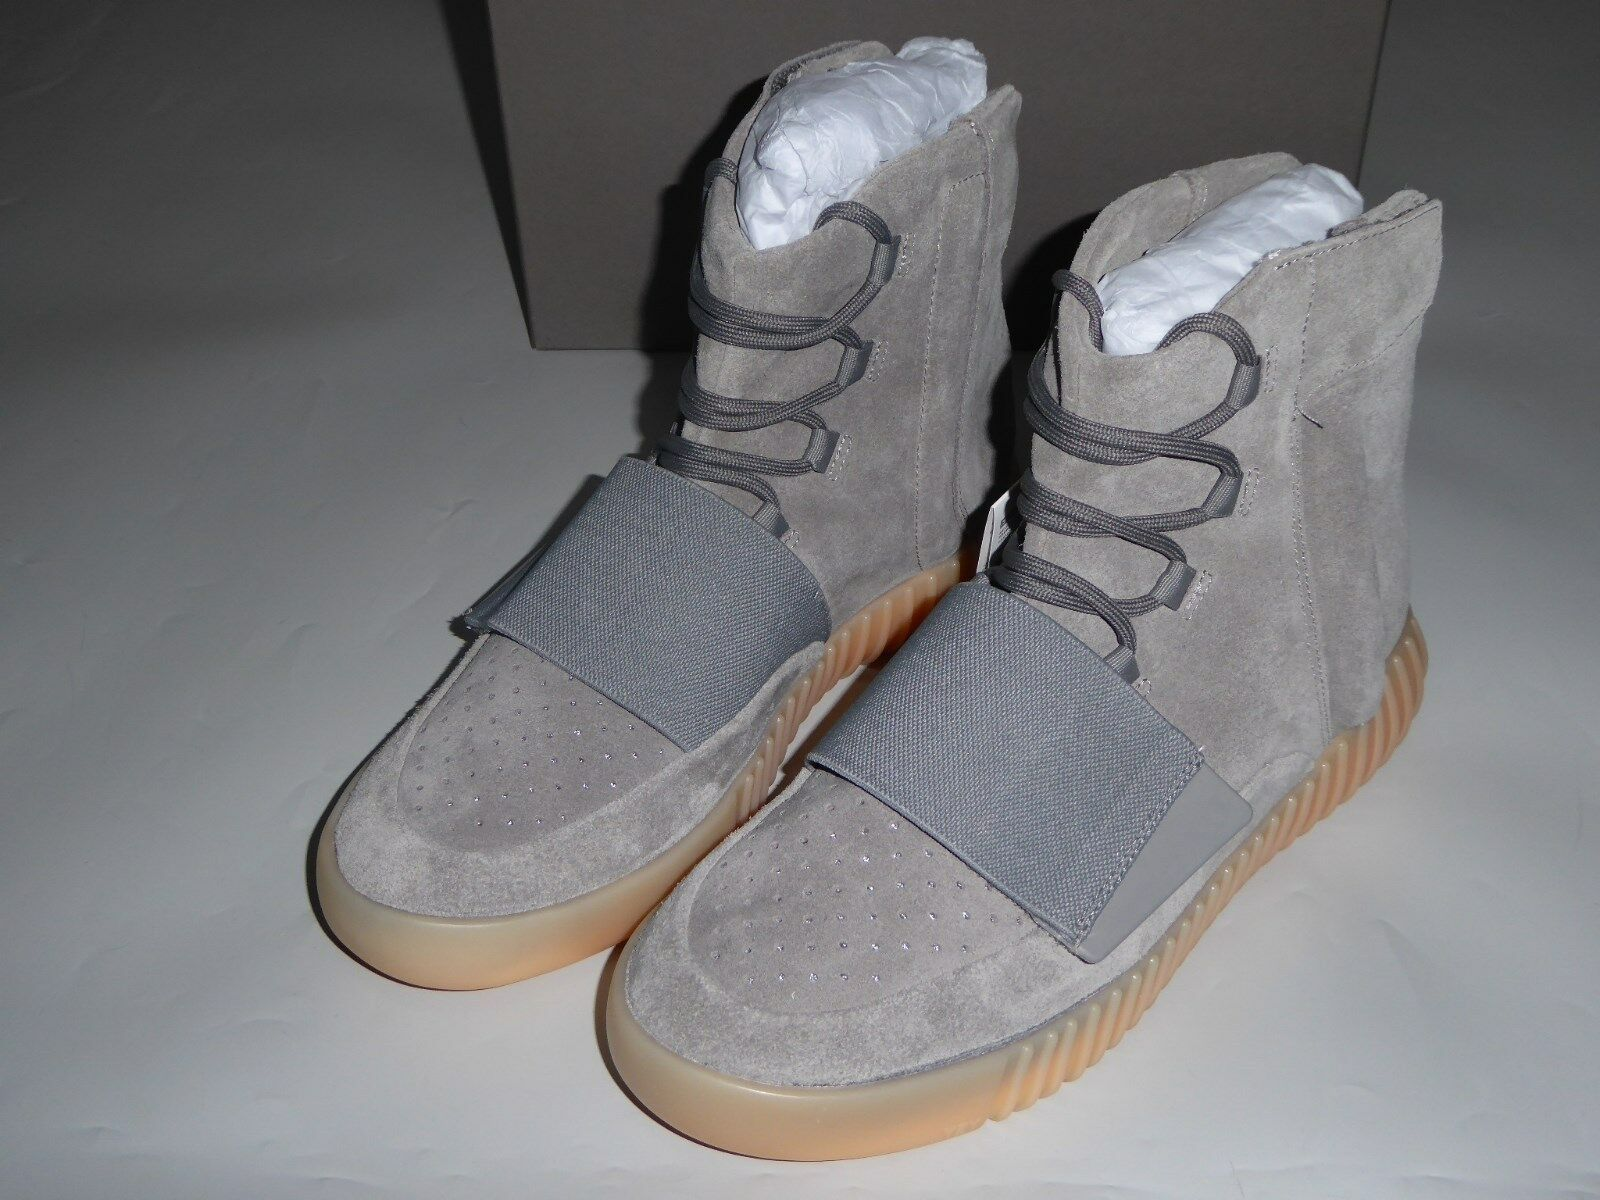 new product 109fc 3a397 750 bb1840 12 458 458 458 adidas yeezy stimuler us10 Gris   chewing - gum  a8cf03